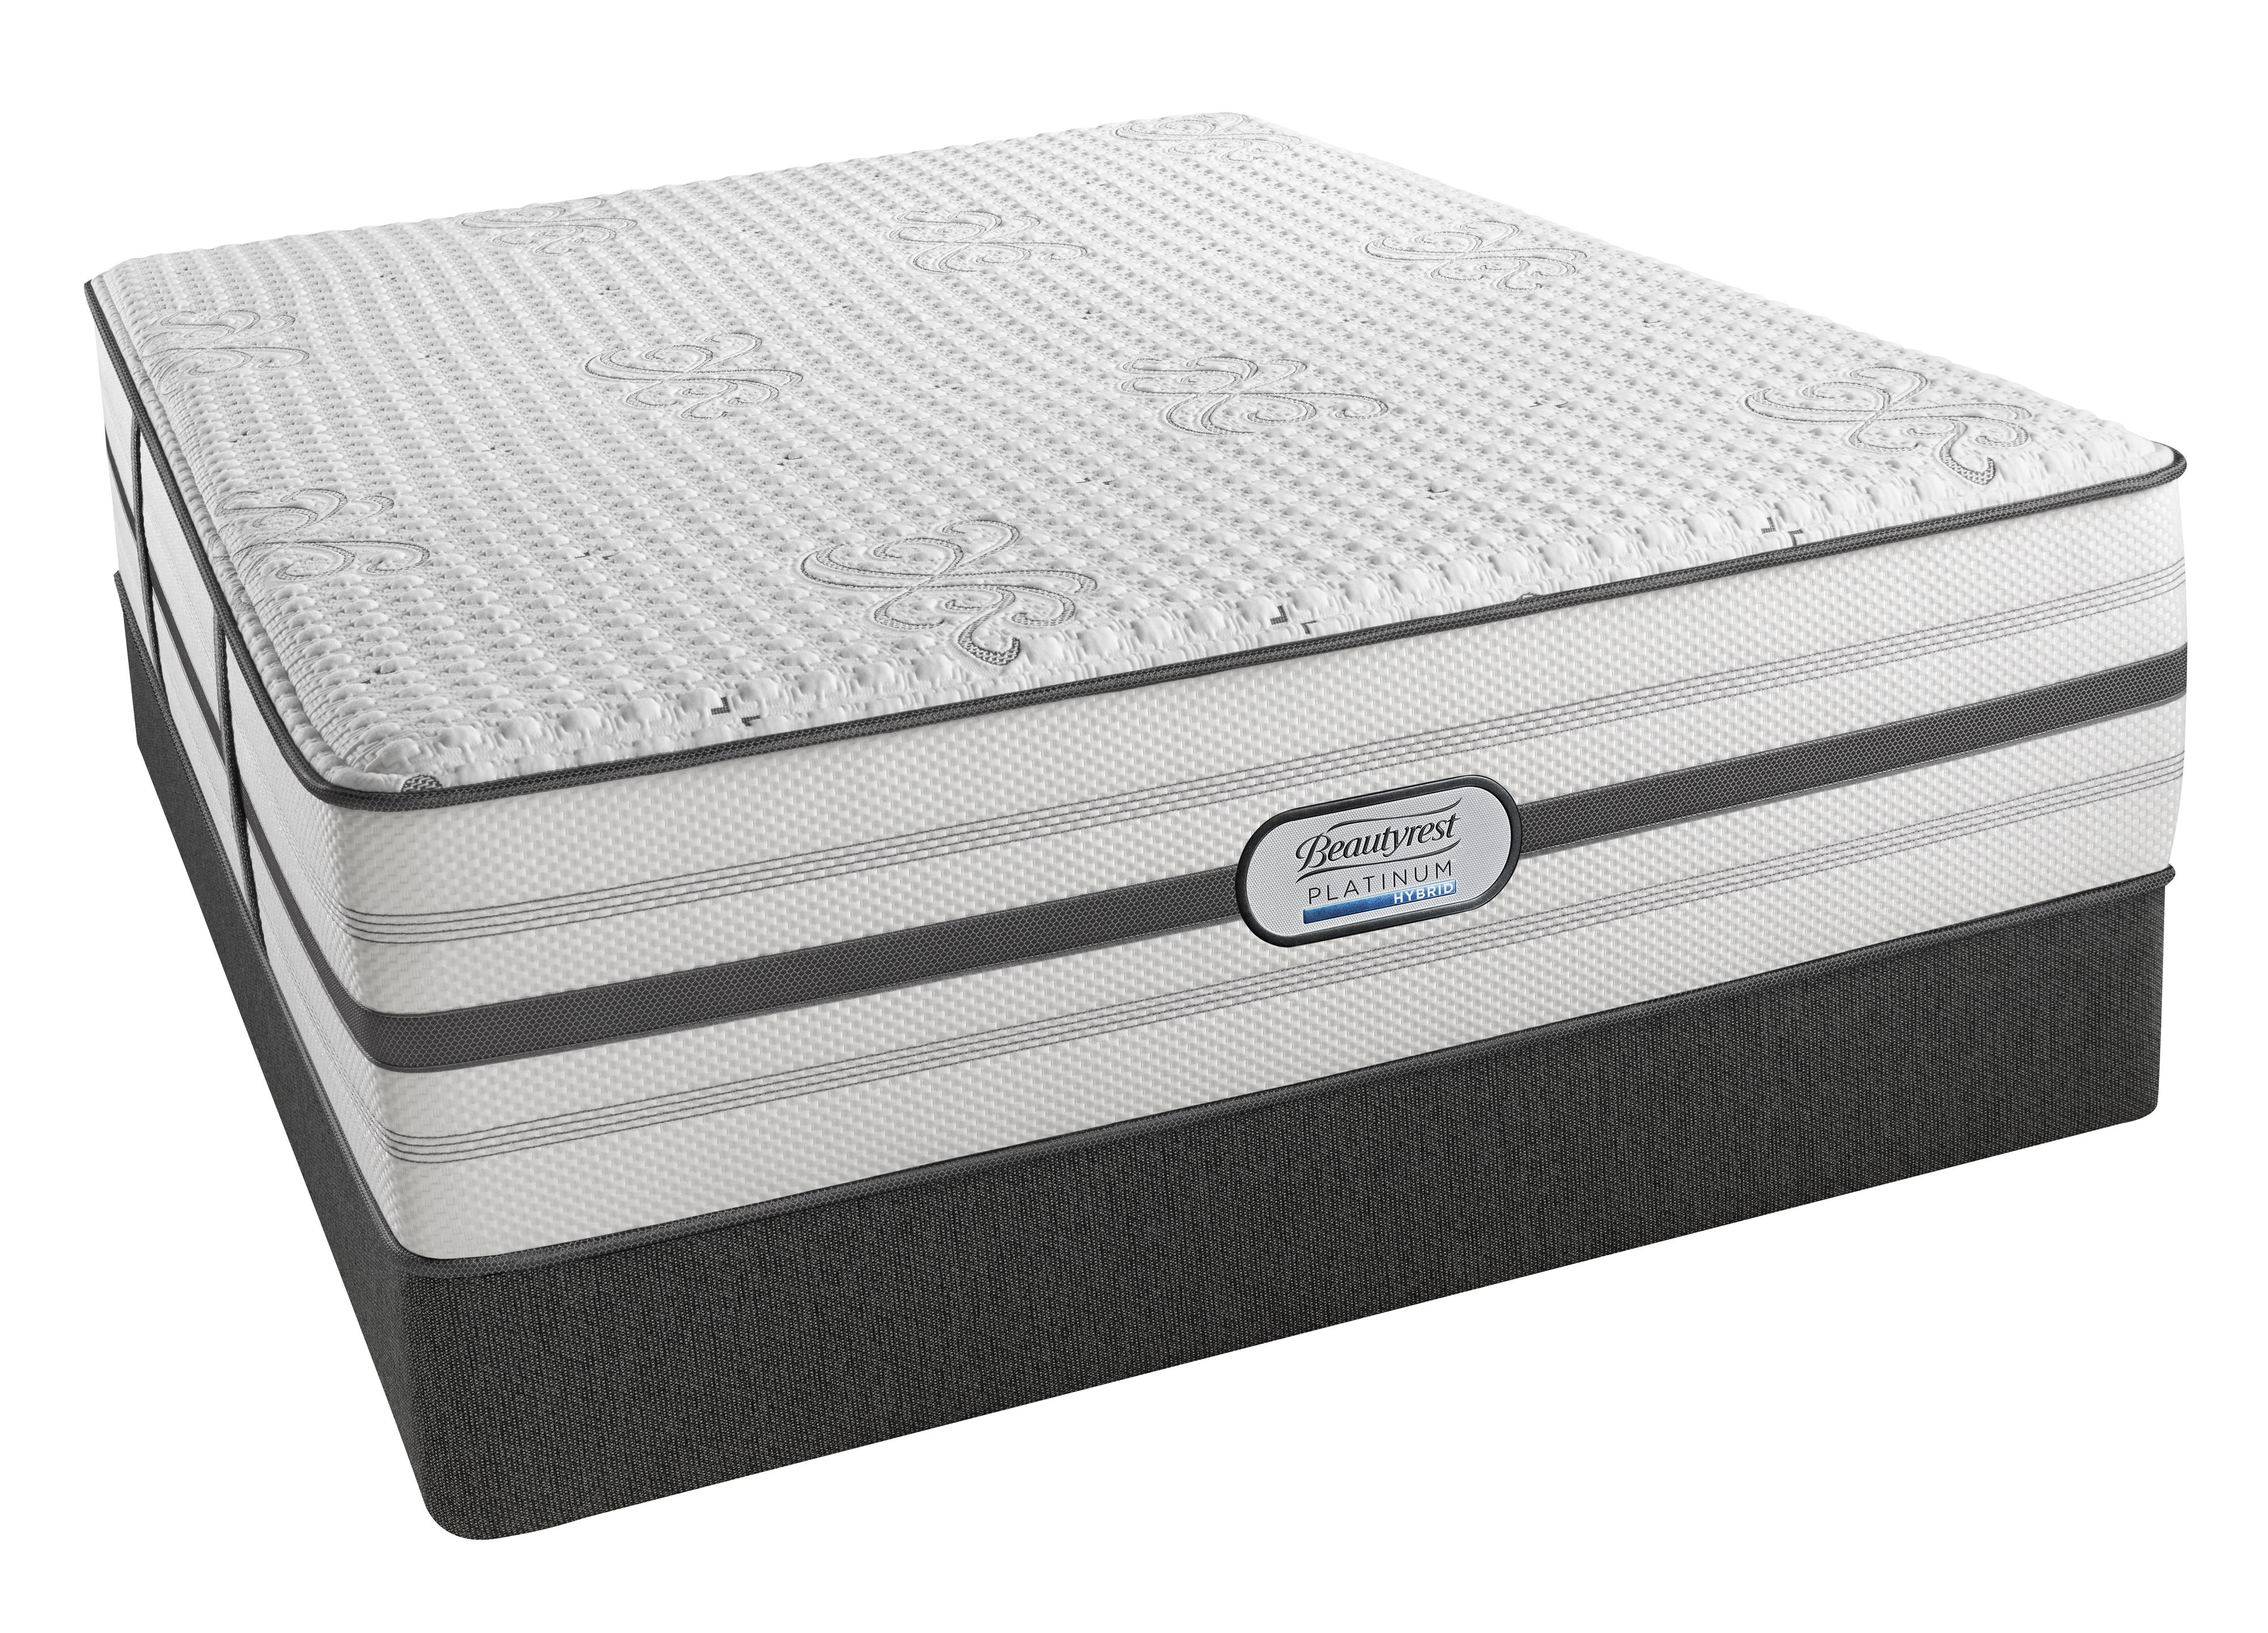 "Beautyrest BR Platinum Hybrid Bryson Twin XL Plush 15"" Hybrid Mattress Set - Item Number: BRHLV2PL-TXL+50280TXLK"